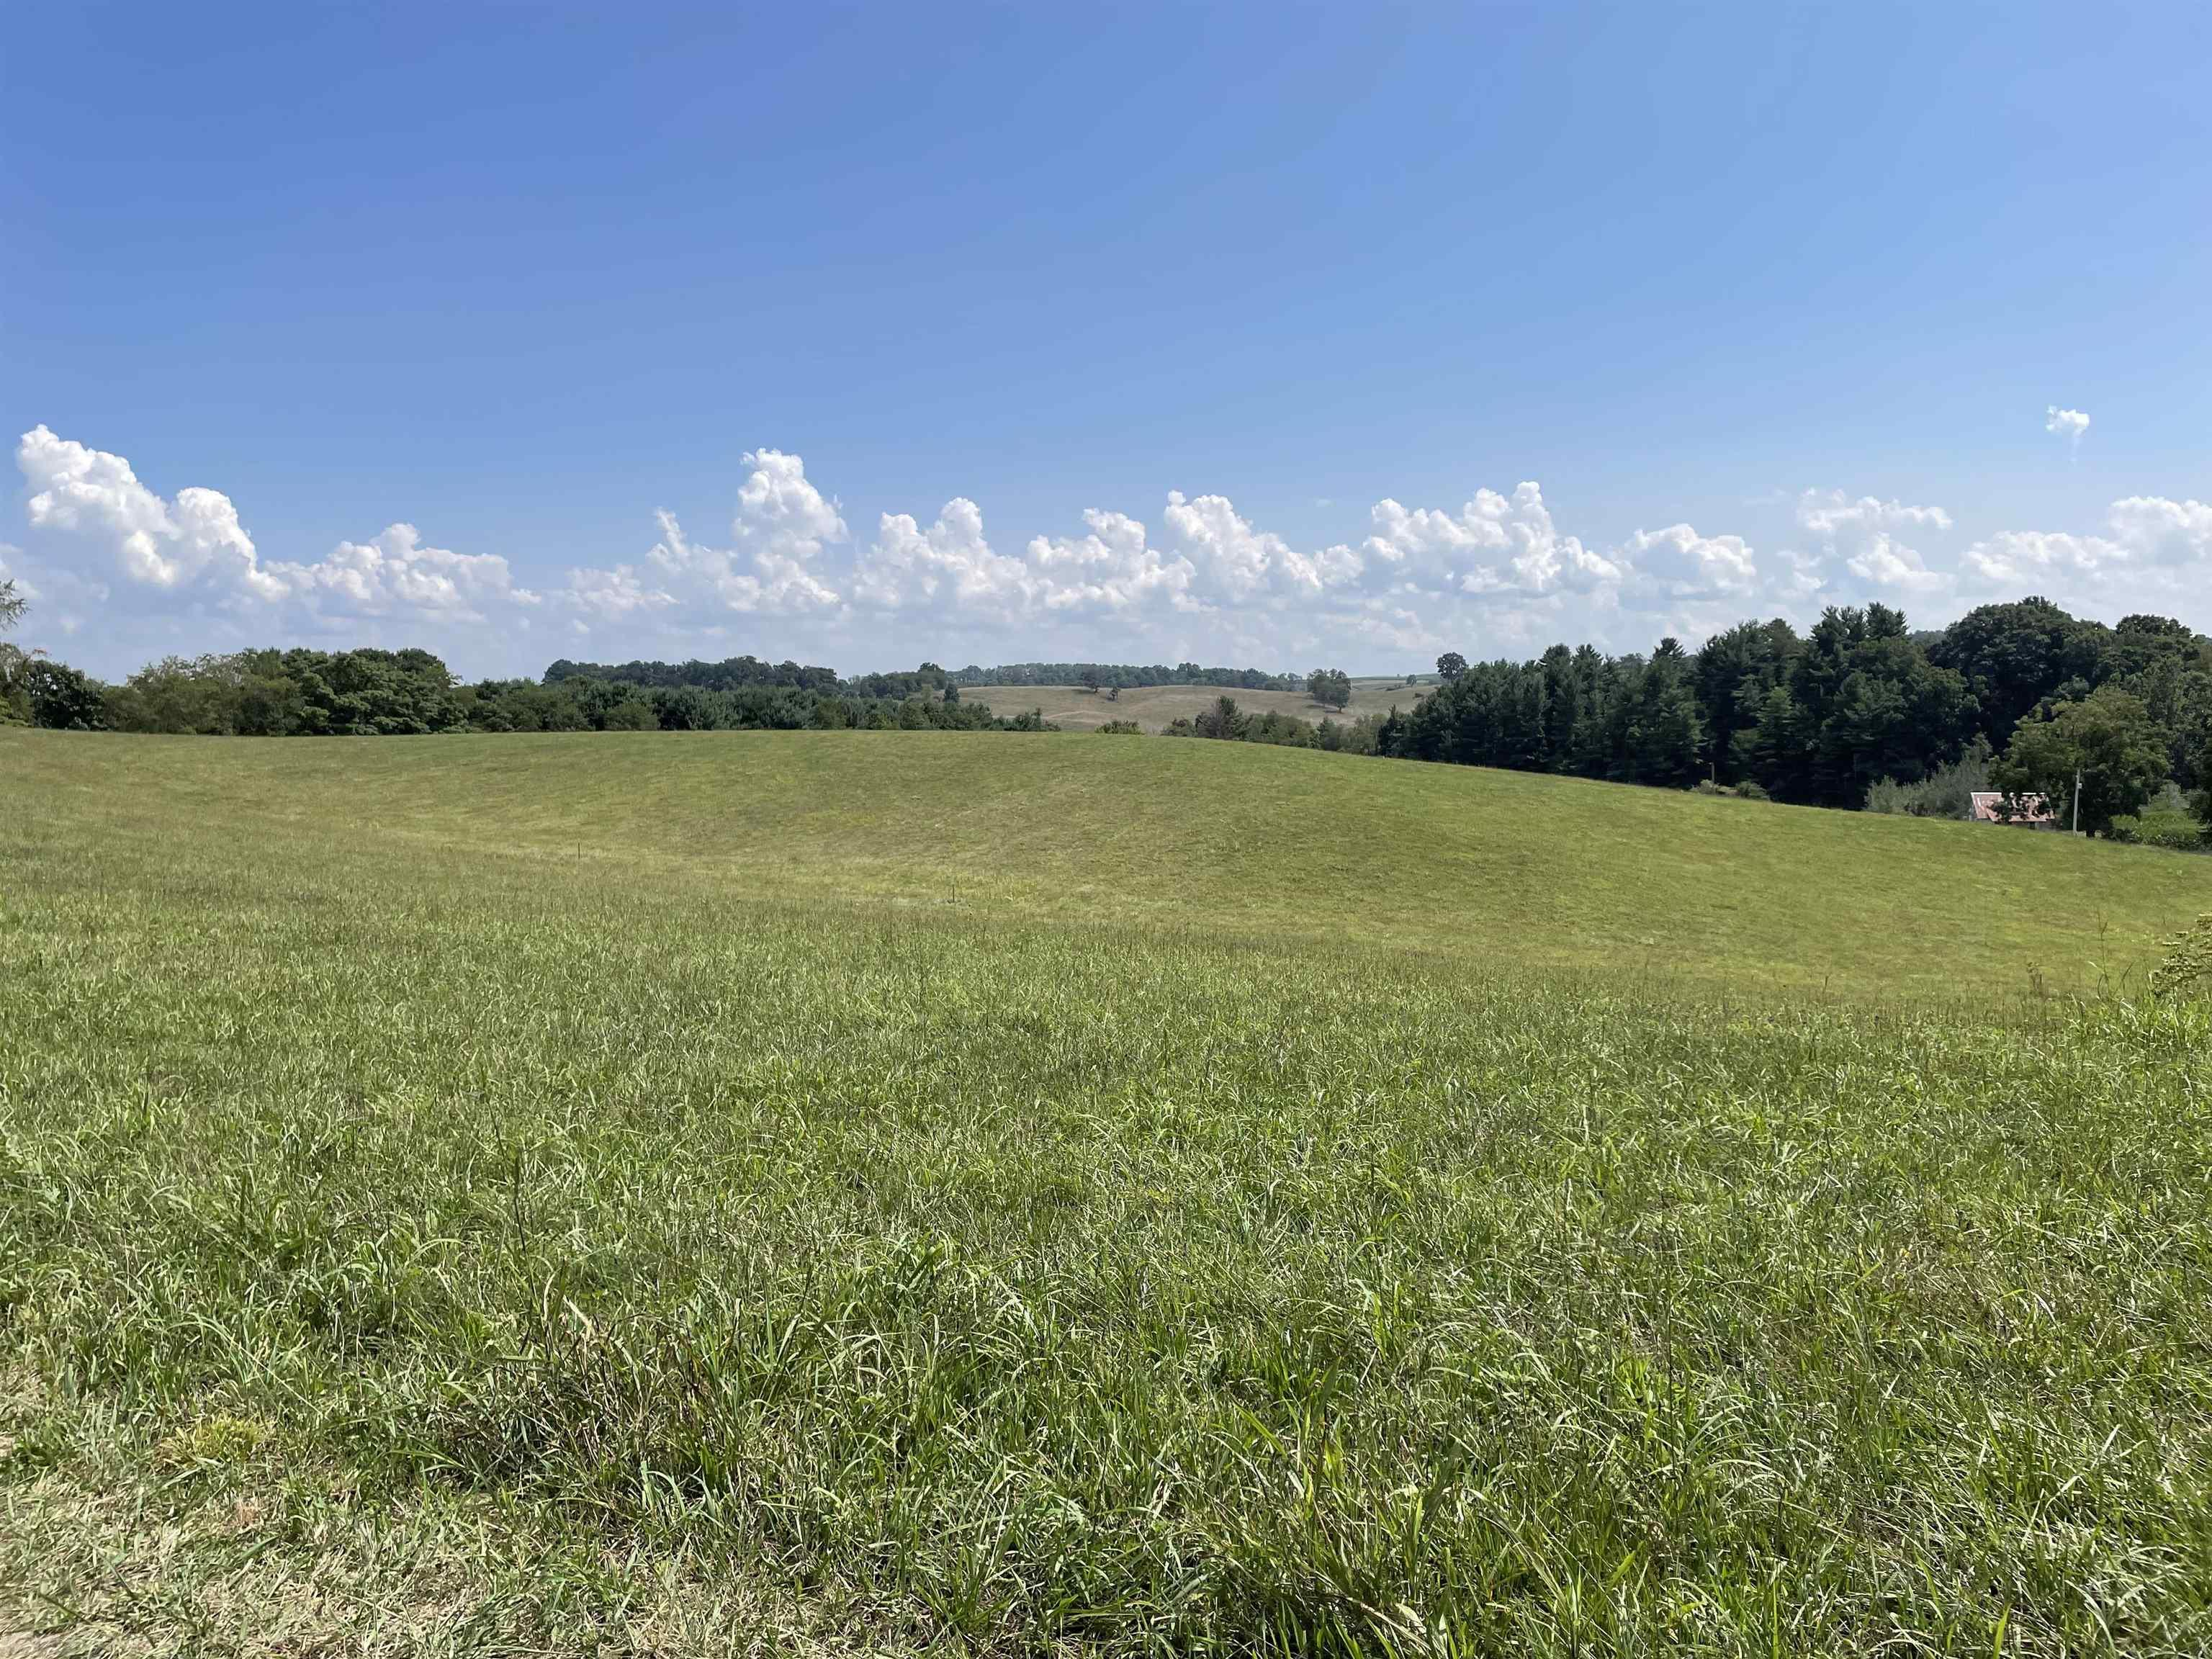 With beautiful rolling hills and mountain views, this 1 acre lot is ready to have your dream home built on! The lot is in a quiet and private setting next to 10 acres of open land. Come and take a look today!